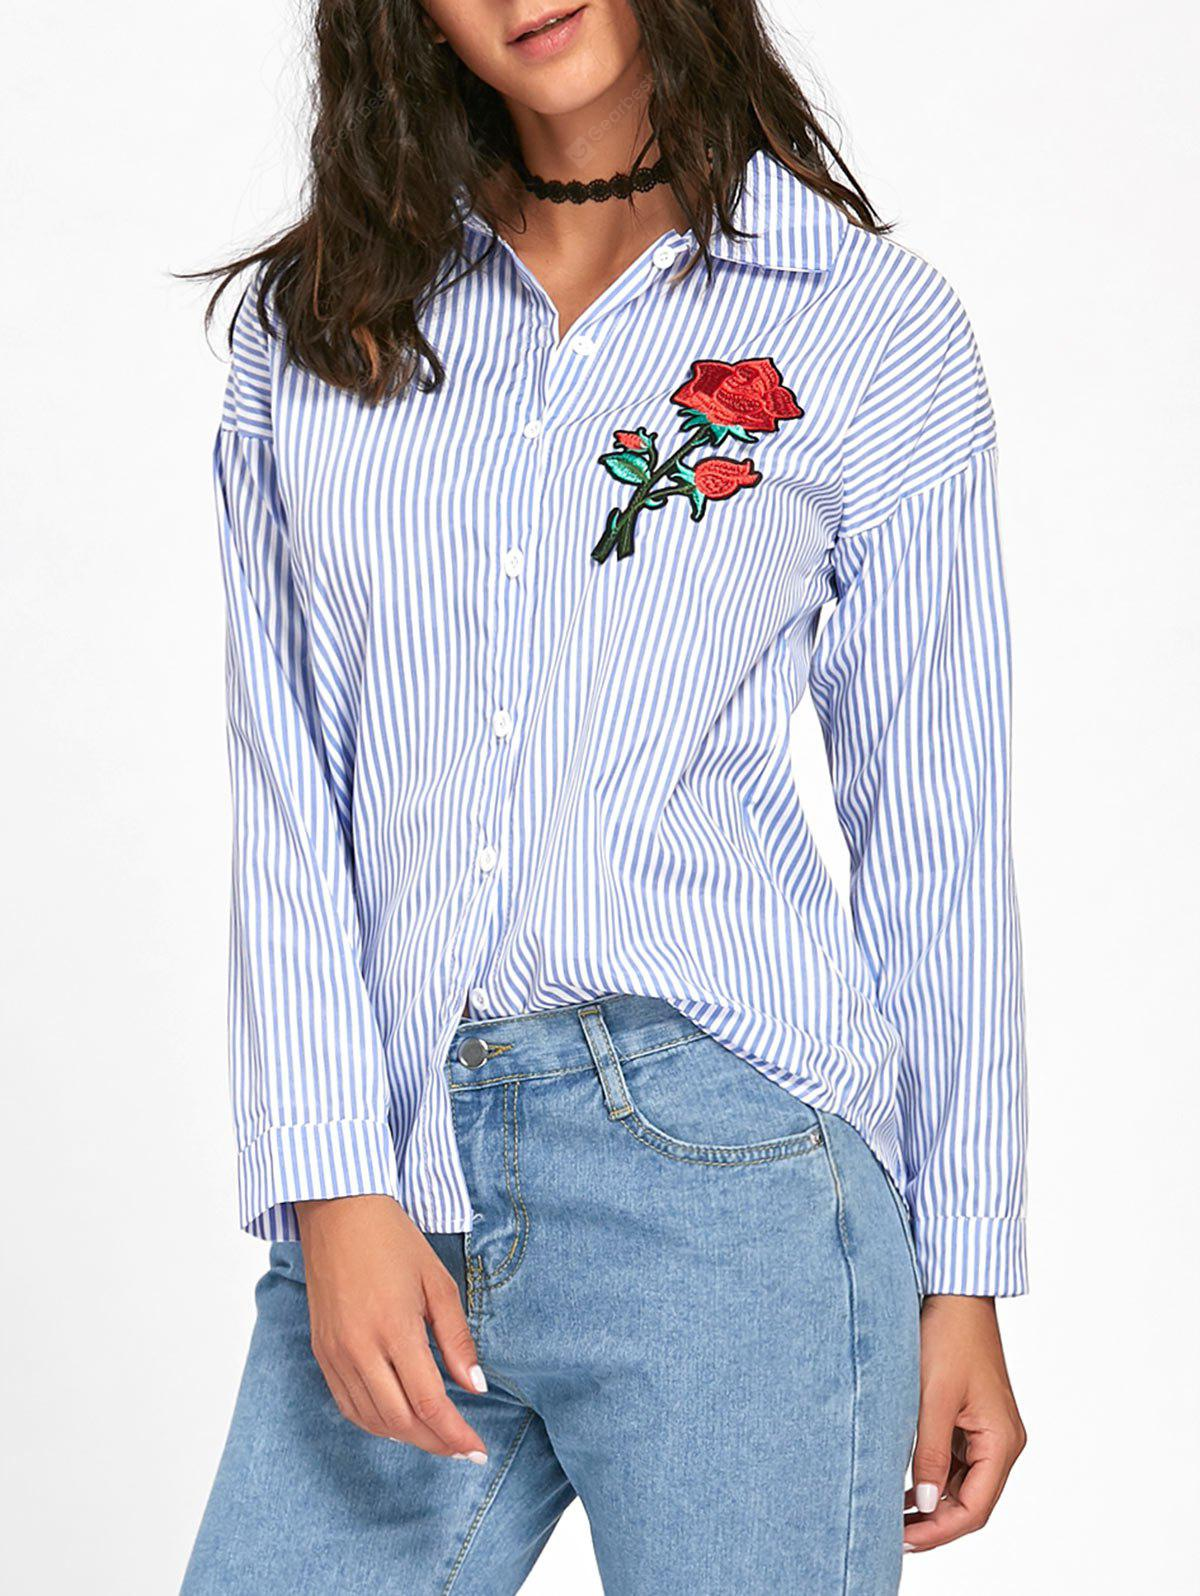 Floral Embroidered High Low Striped Shirt